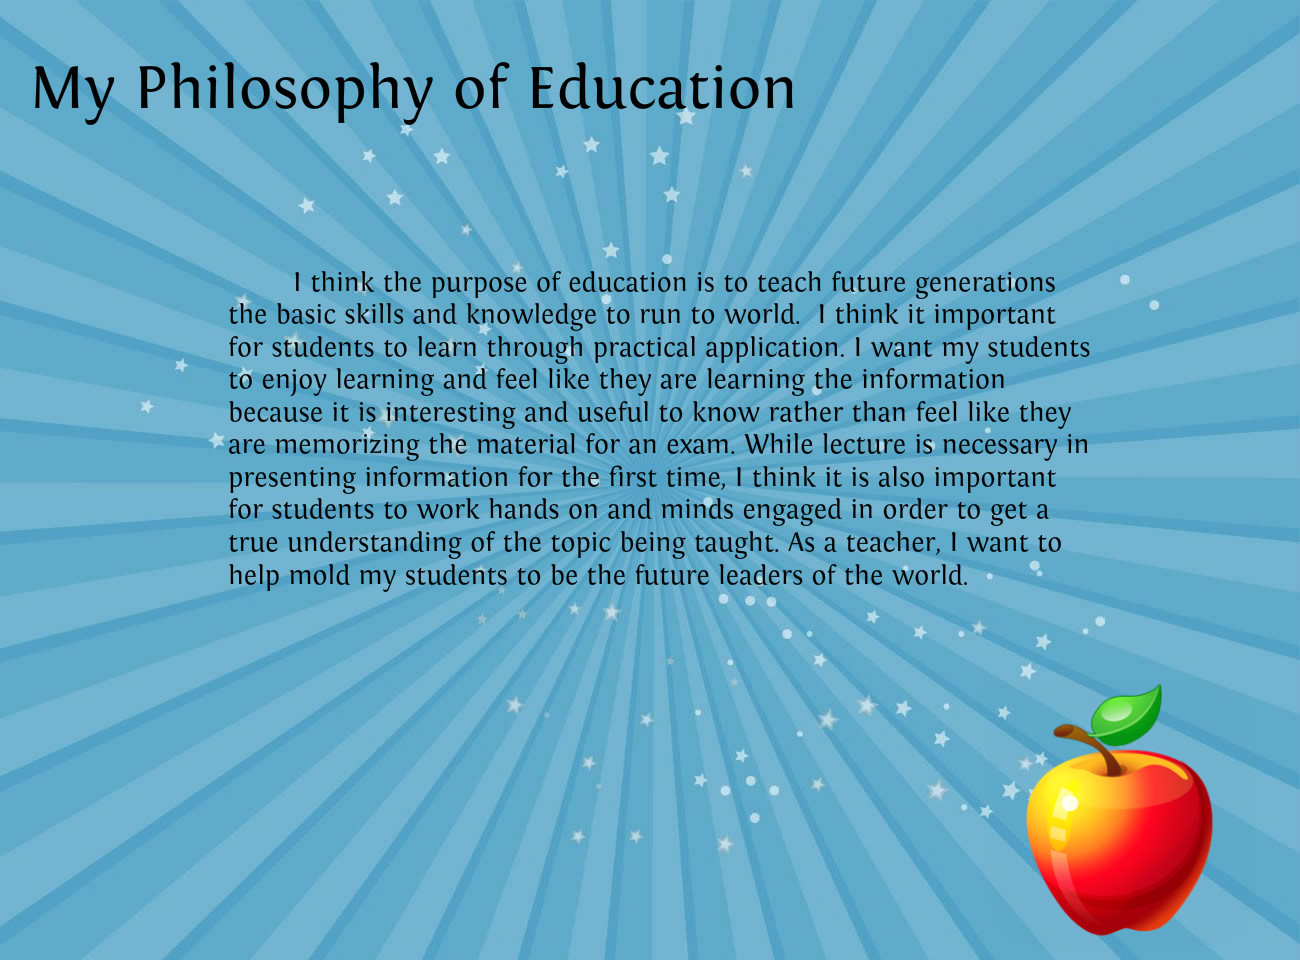 Essay on education philosophy and rationale